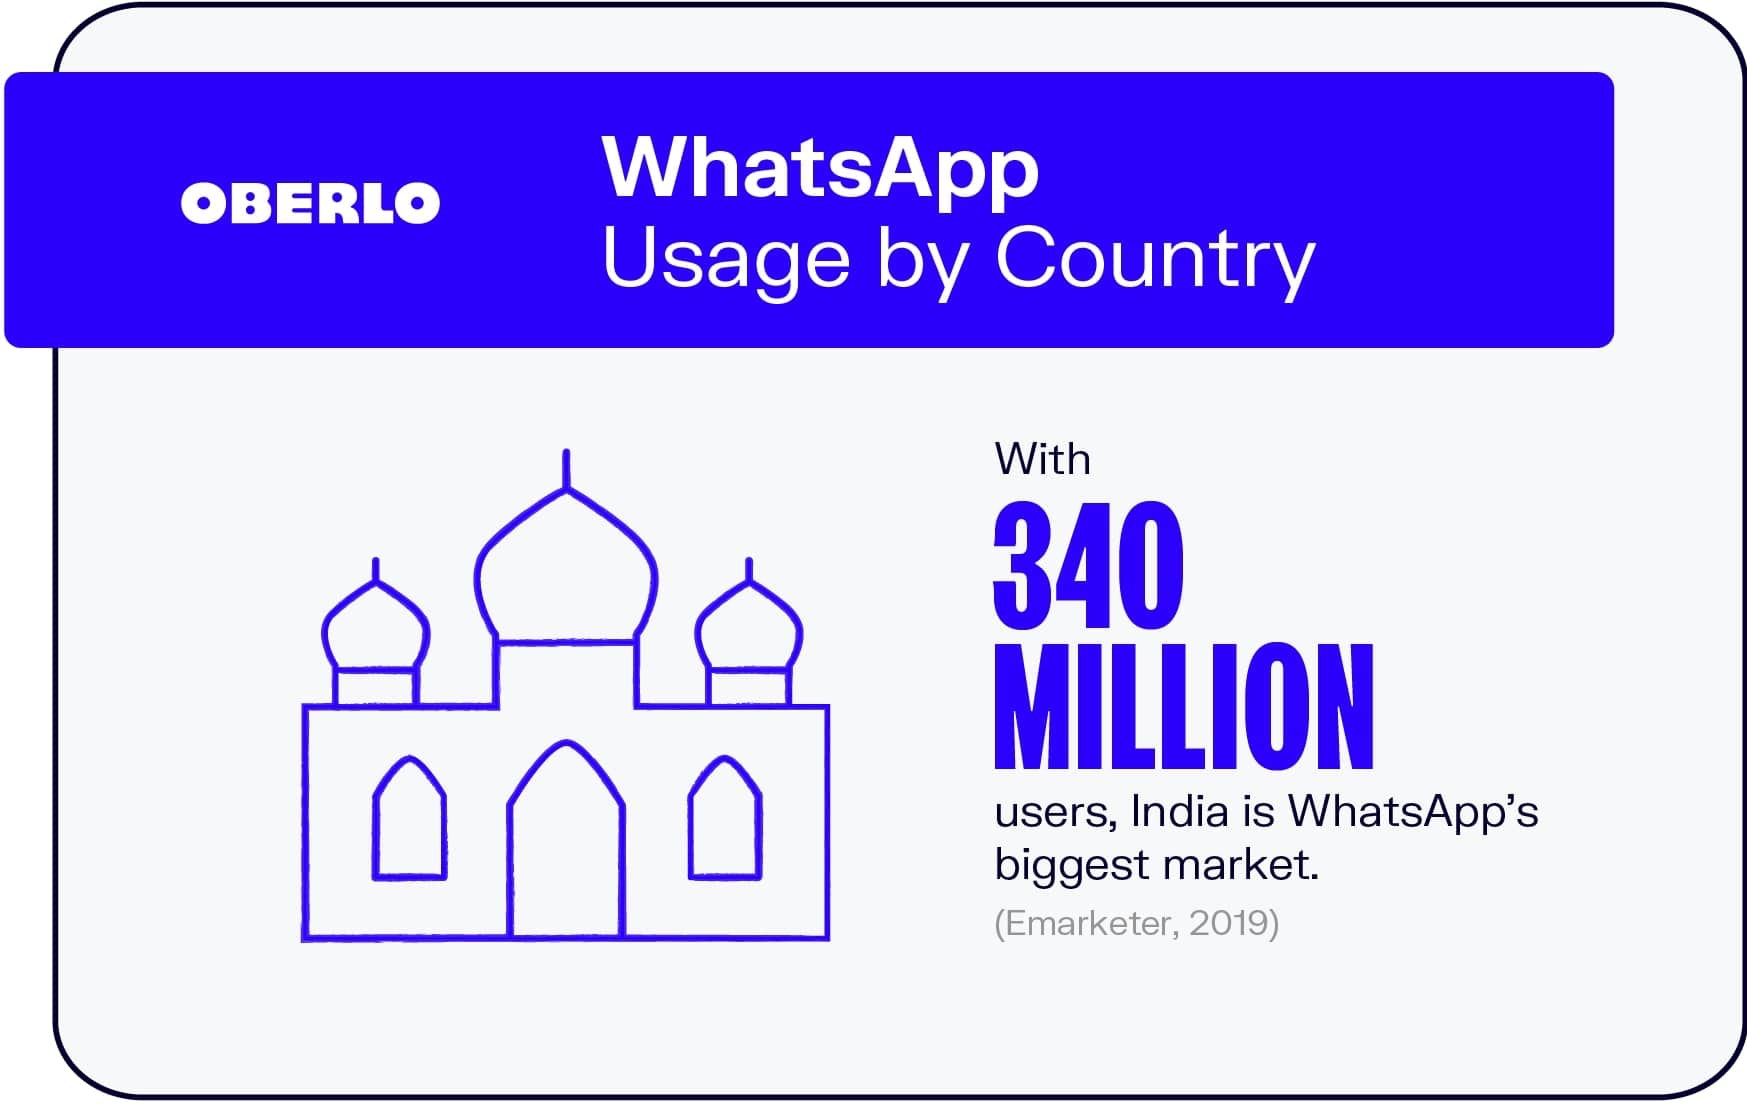 WhatsApp Usage by Country